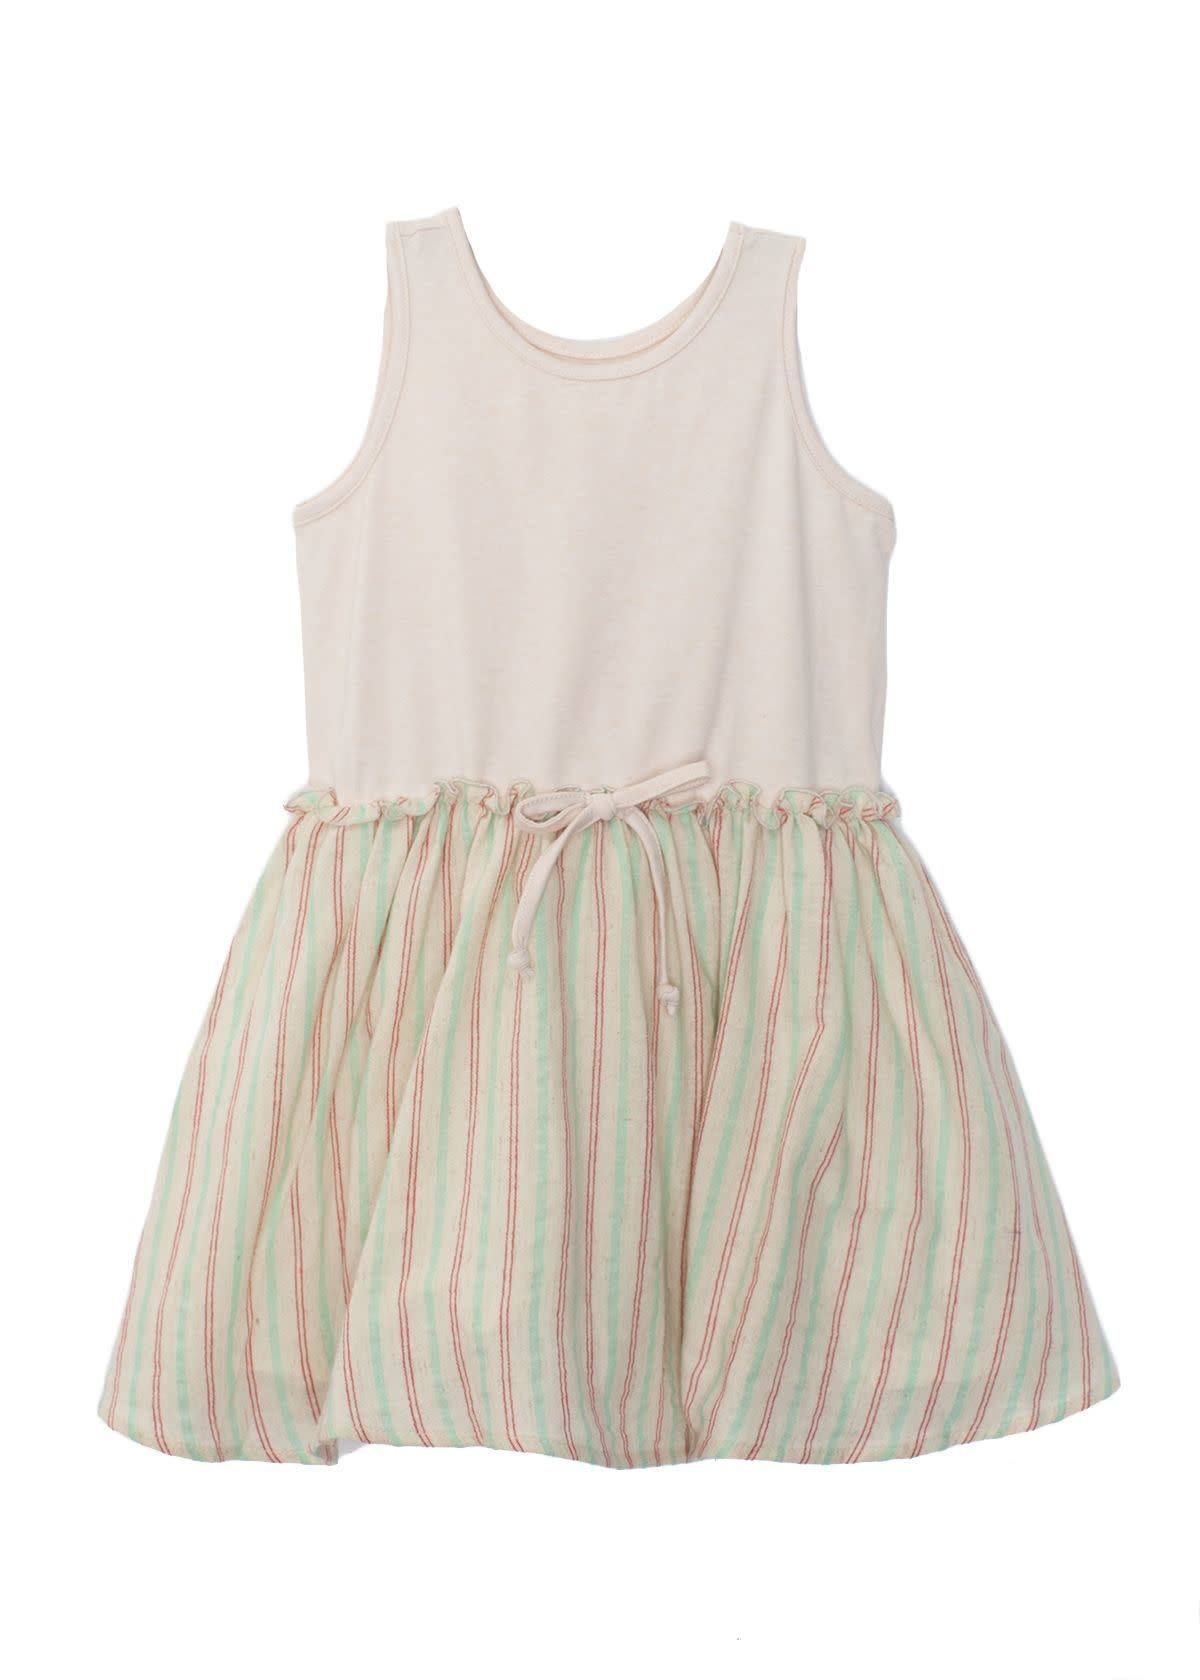 Mabel and Honey Natural Knit Dress w Woven Skirt